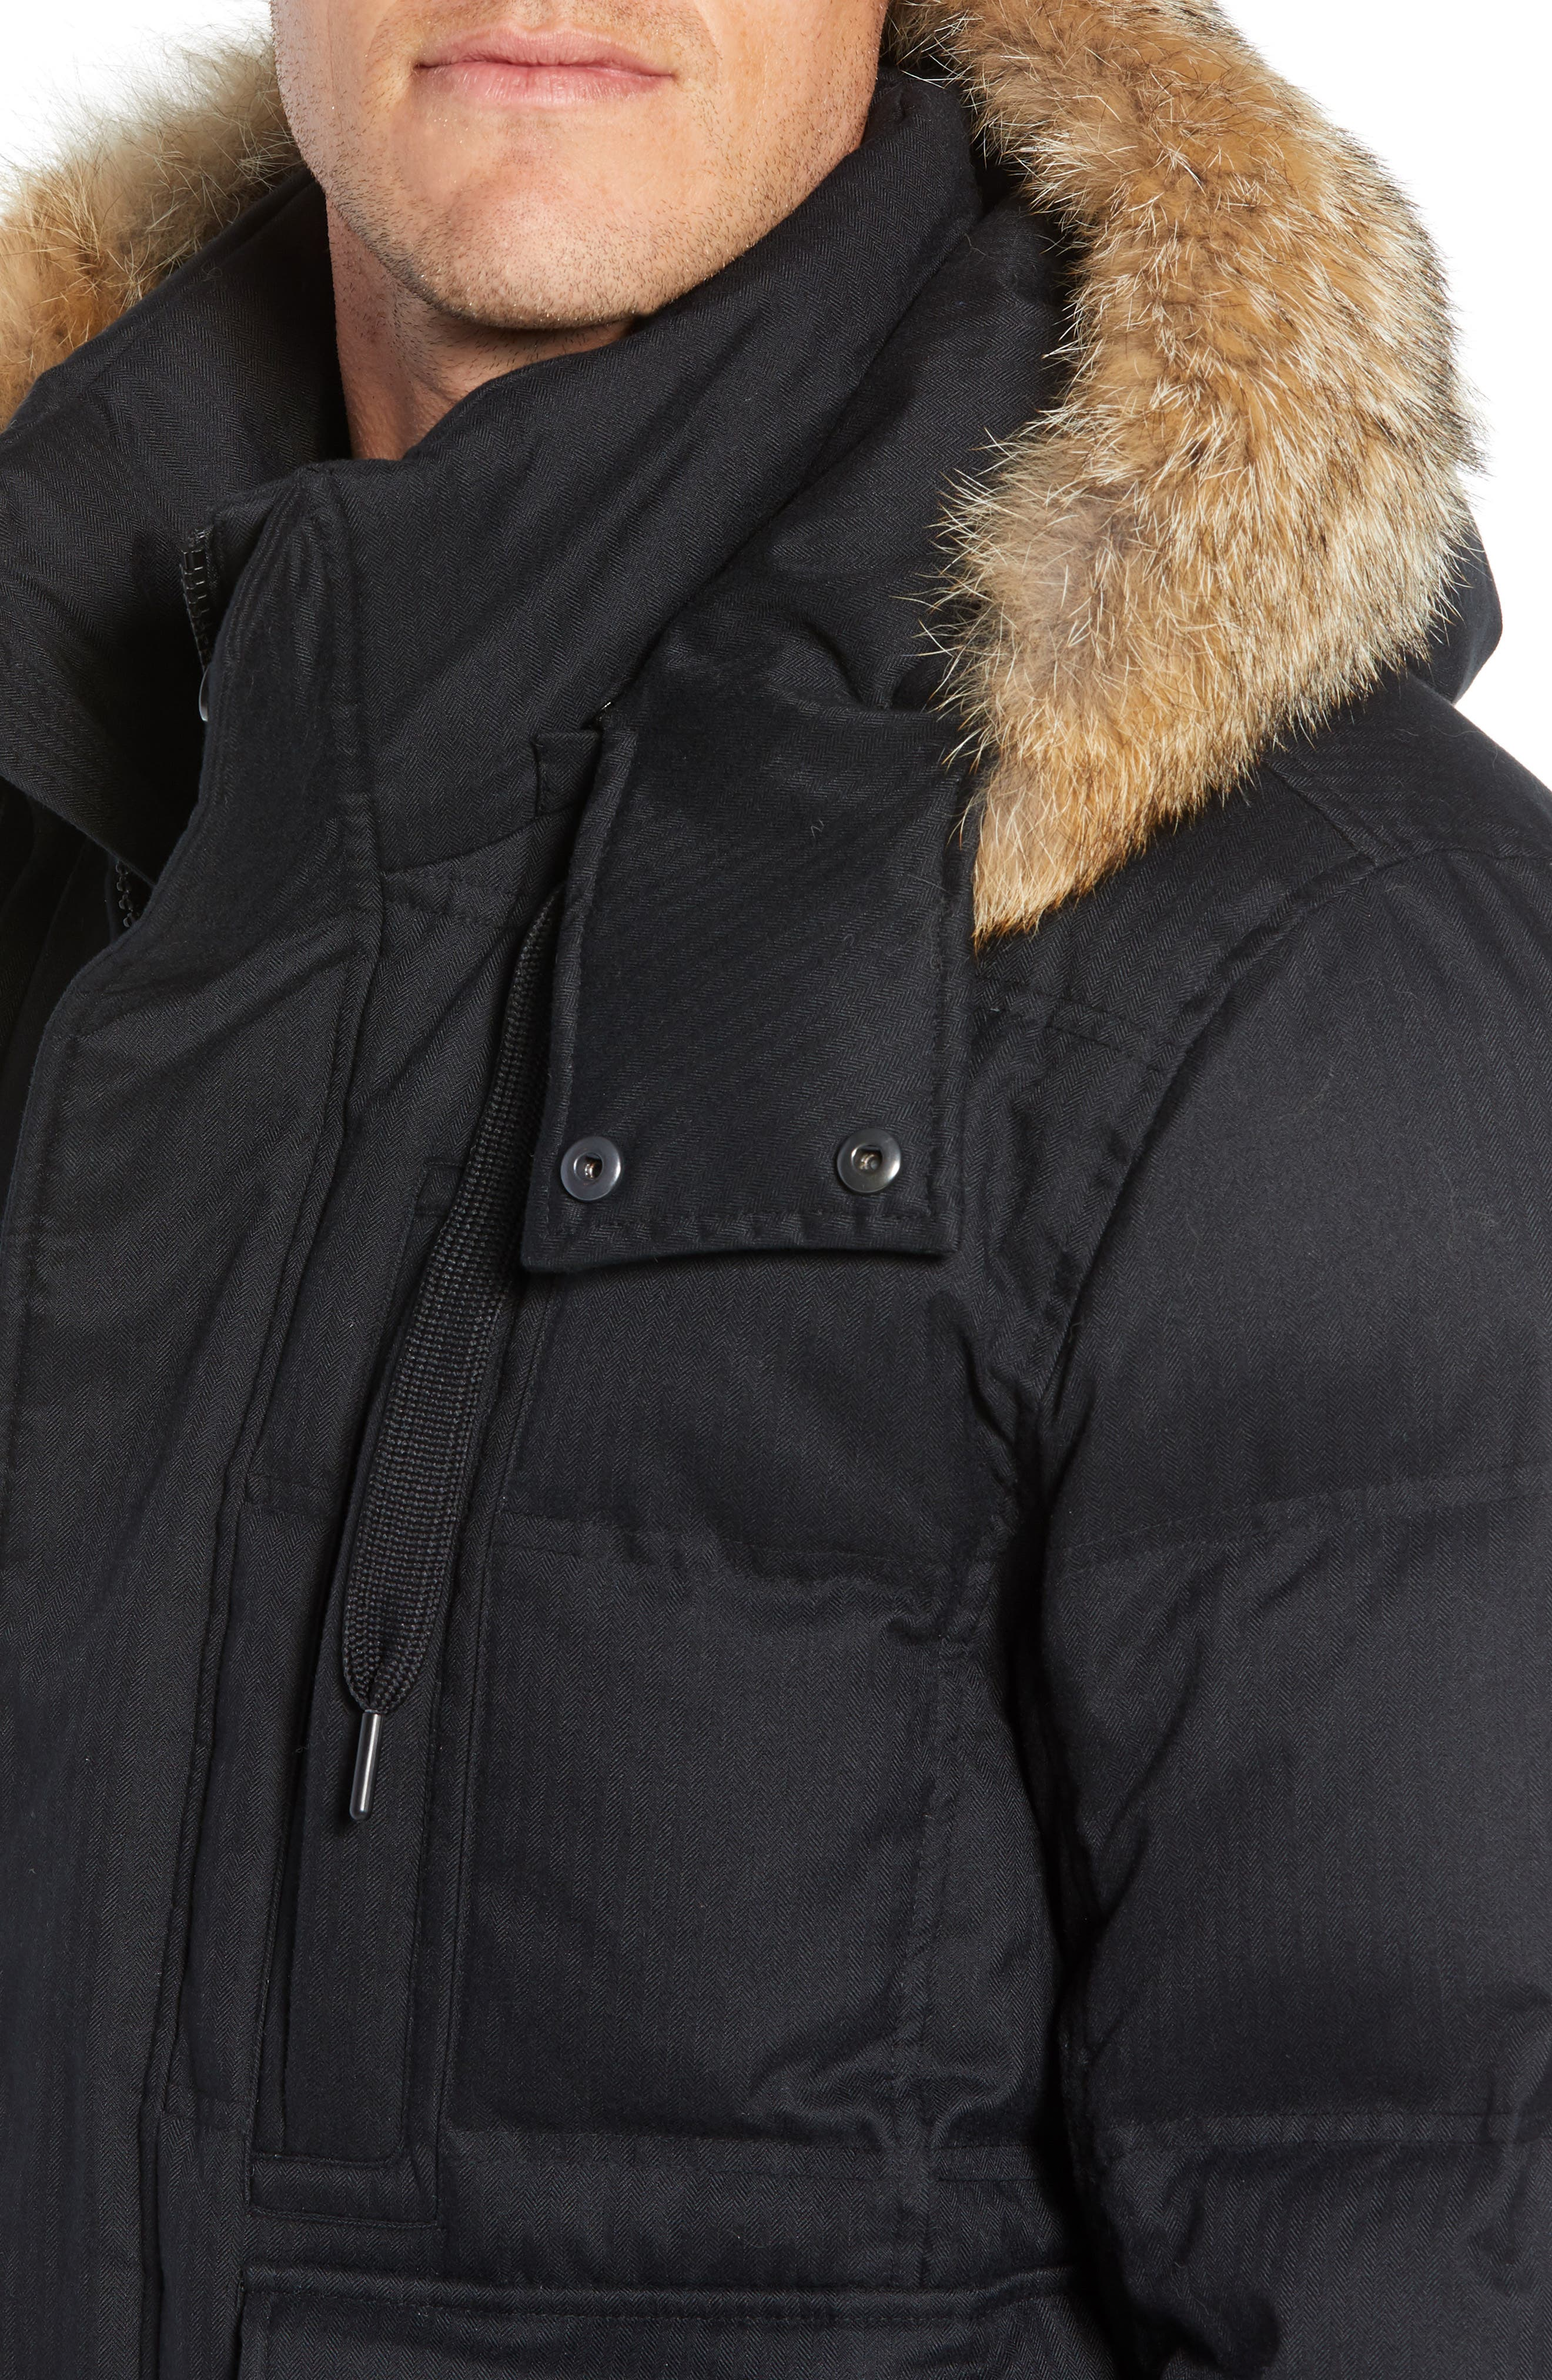 Bohlen Down & Feather Bomber Jacket with Removable Genuine Coyote Fur Trim Hood,                             Alternate thumbnail 5, color,                             BLACK